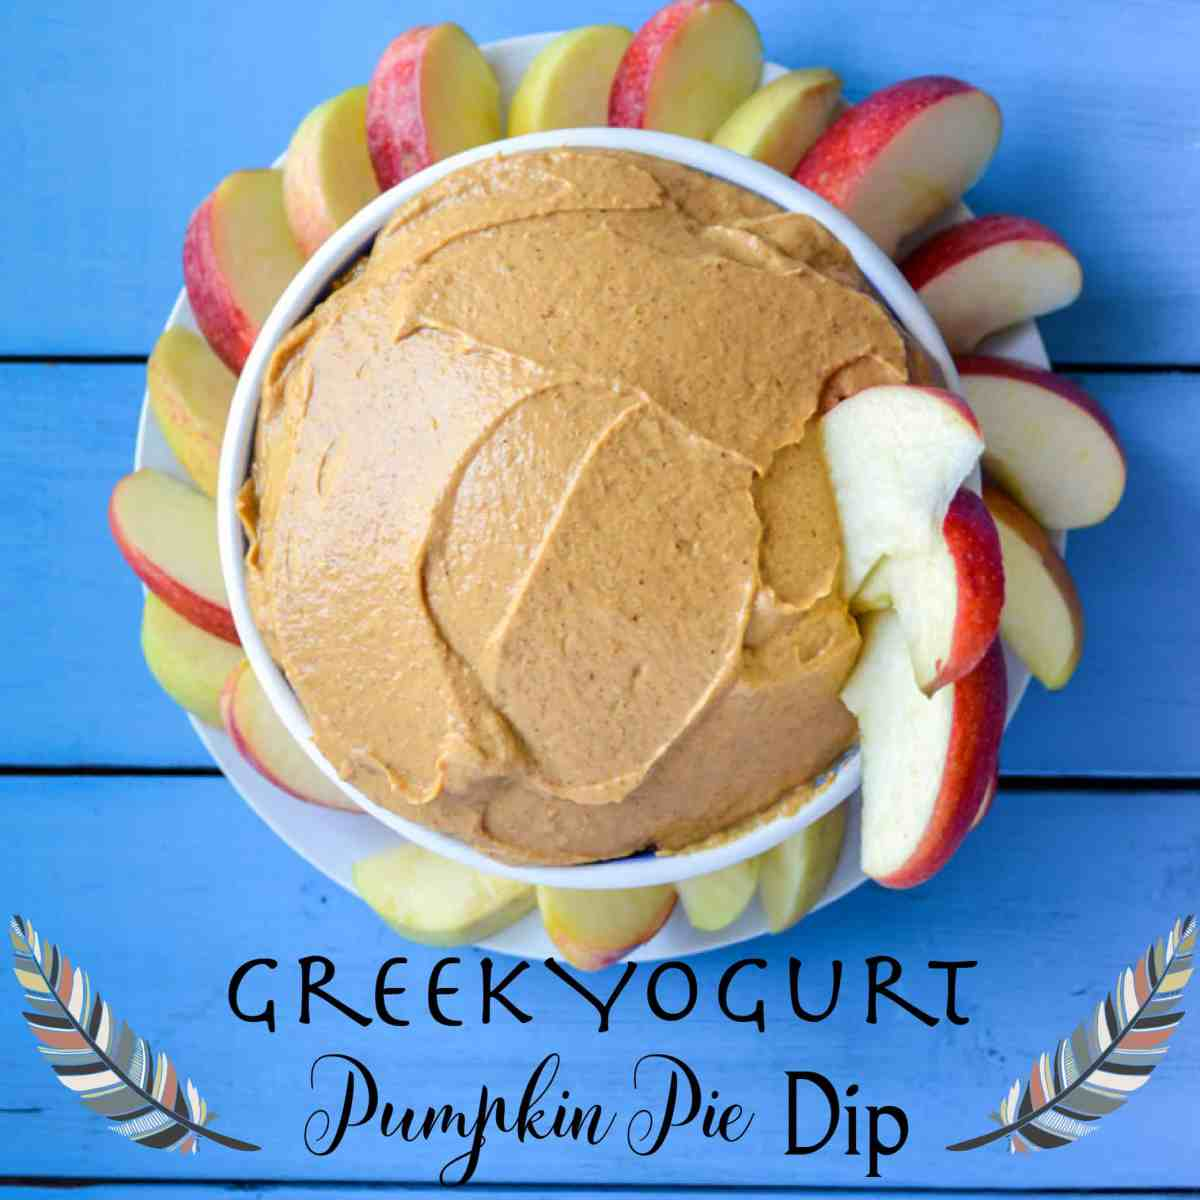 Greek Yogurt Pumpkin Pie Spice Fruit Dip